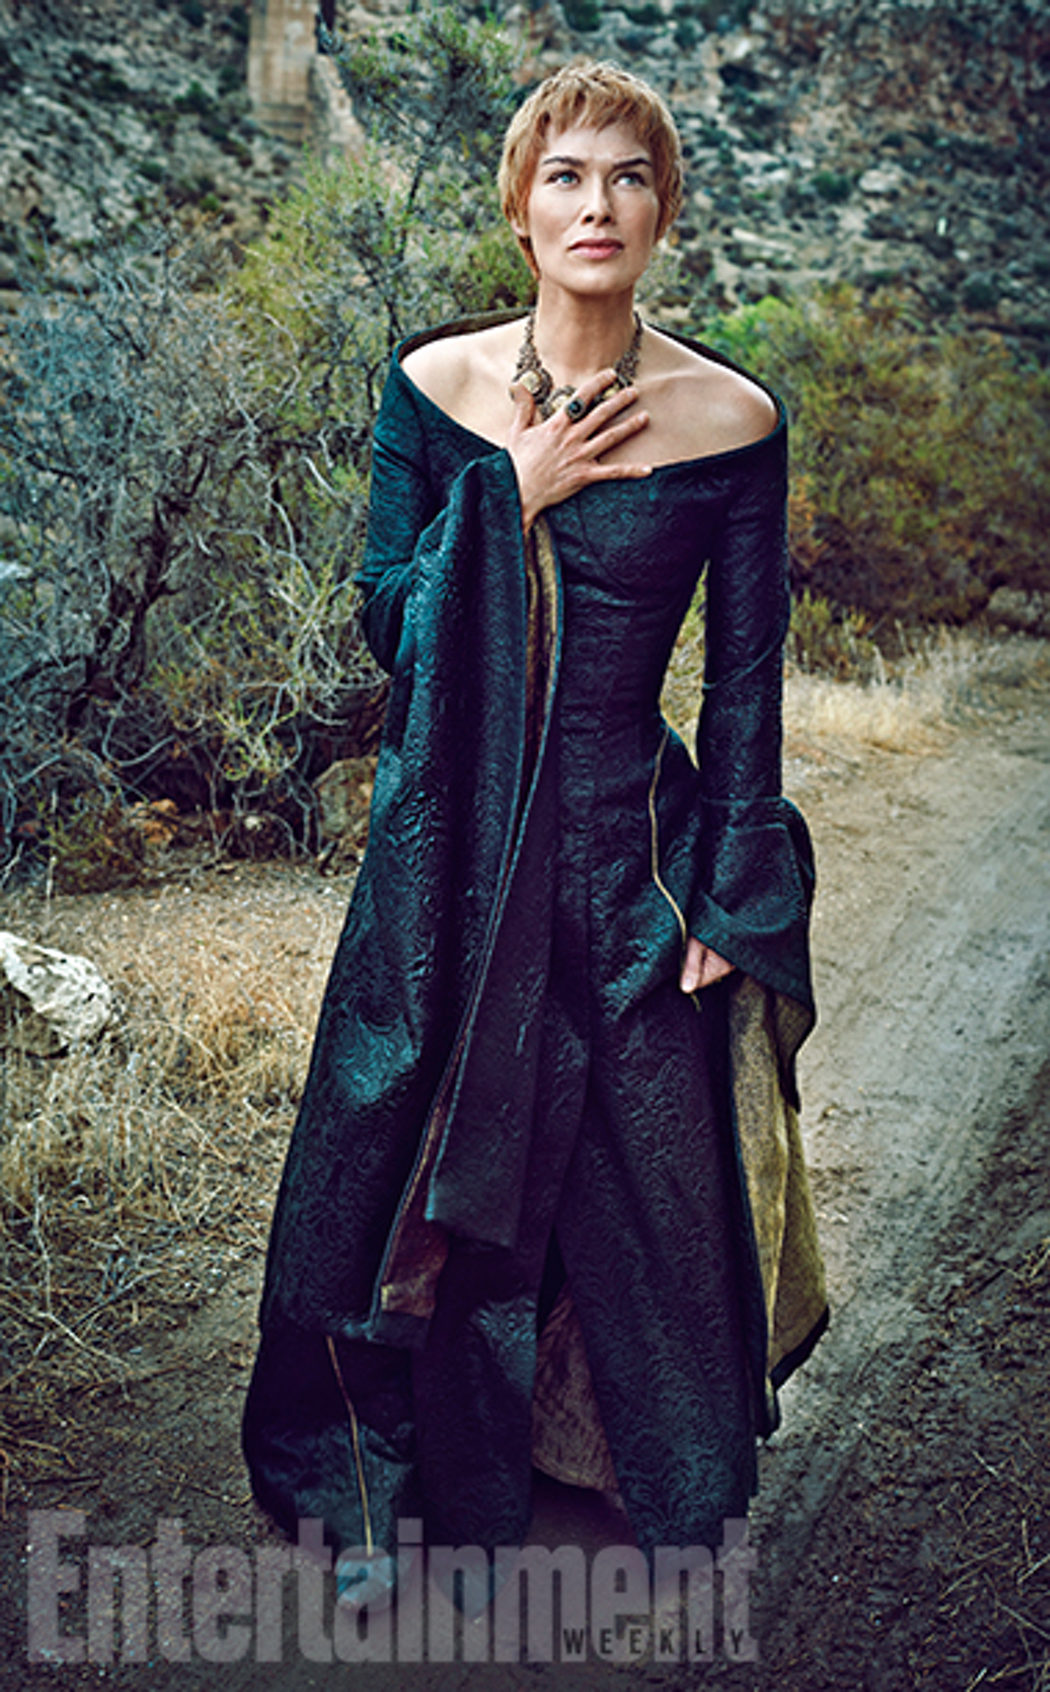 Lena Heady posa para Entertainment Weekly